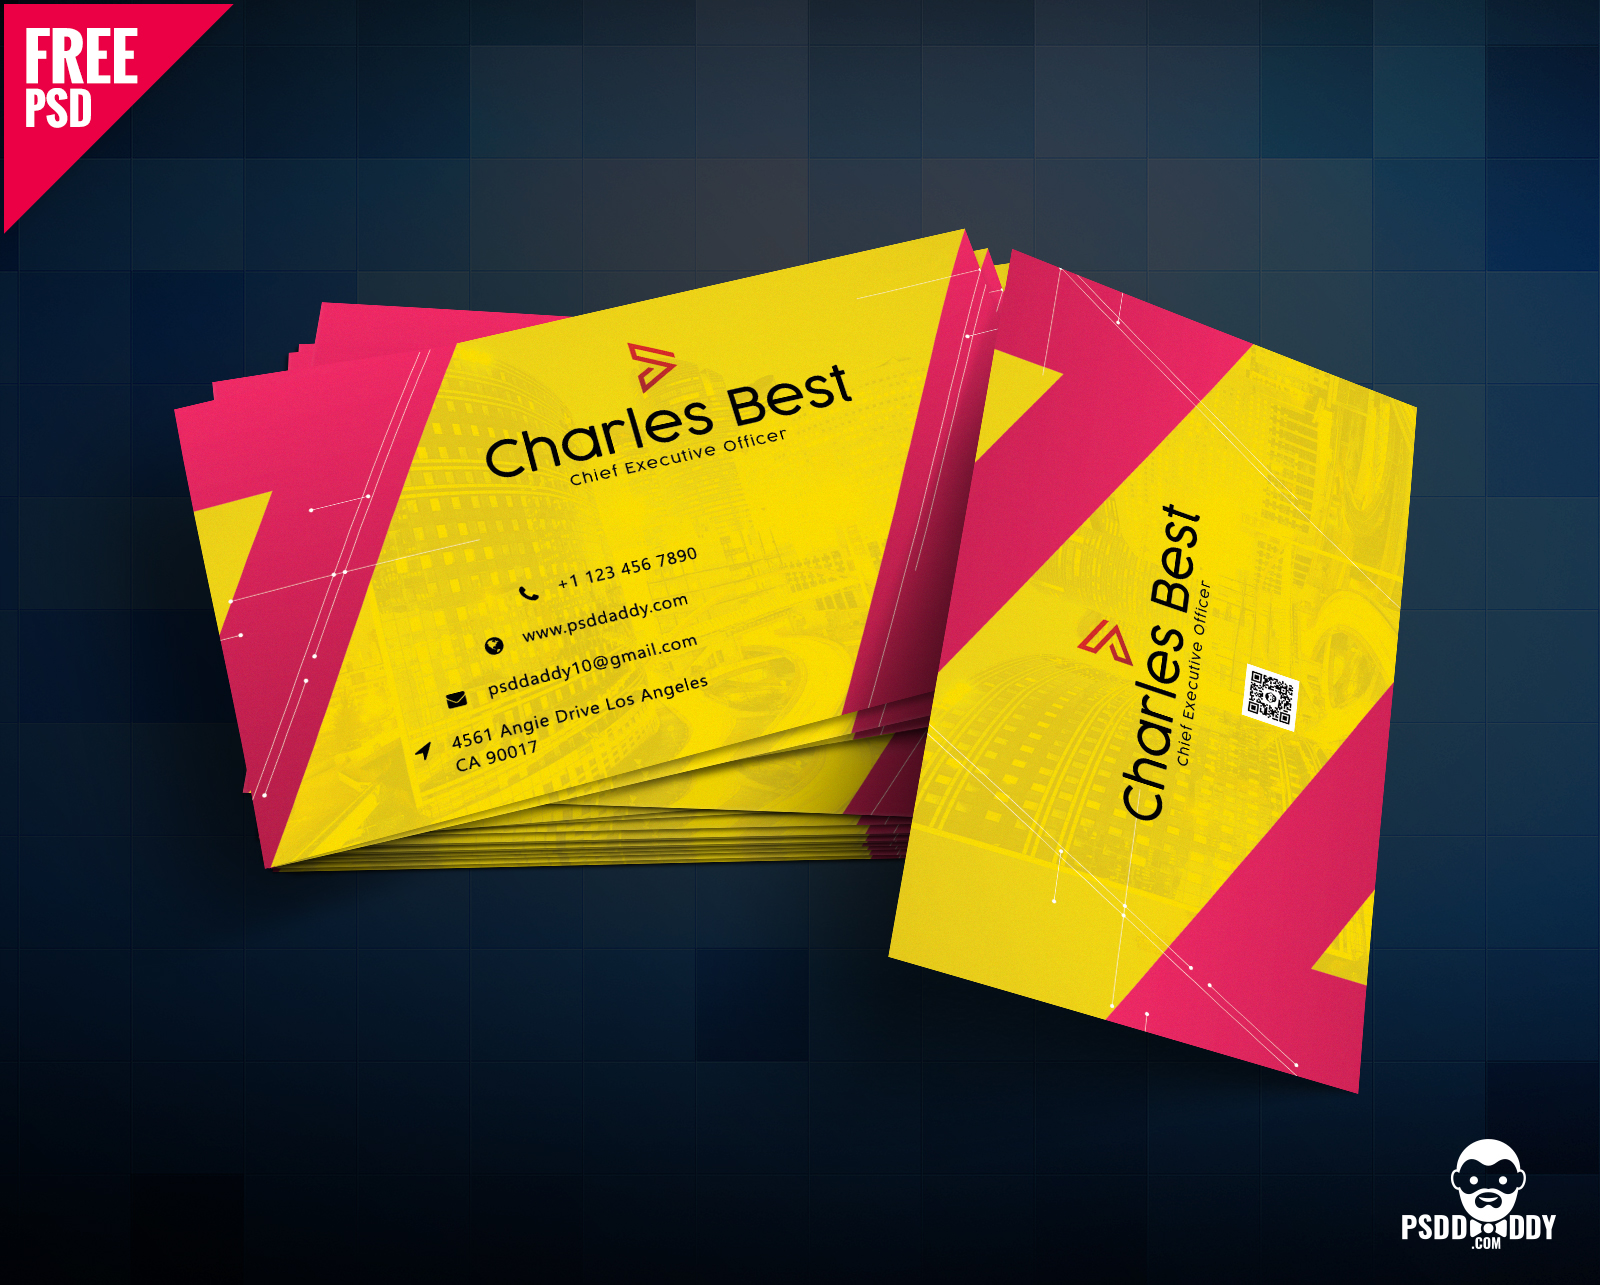 Download creative business card free psd psddaddy business card design business card design templates business card dimensions business card holder cheaphphosting Choice Image